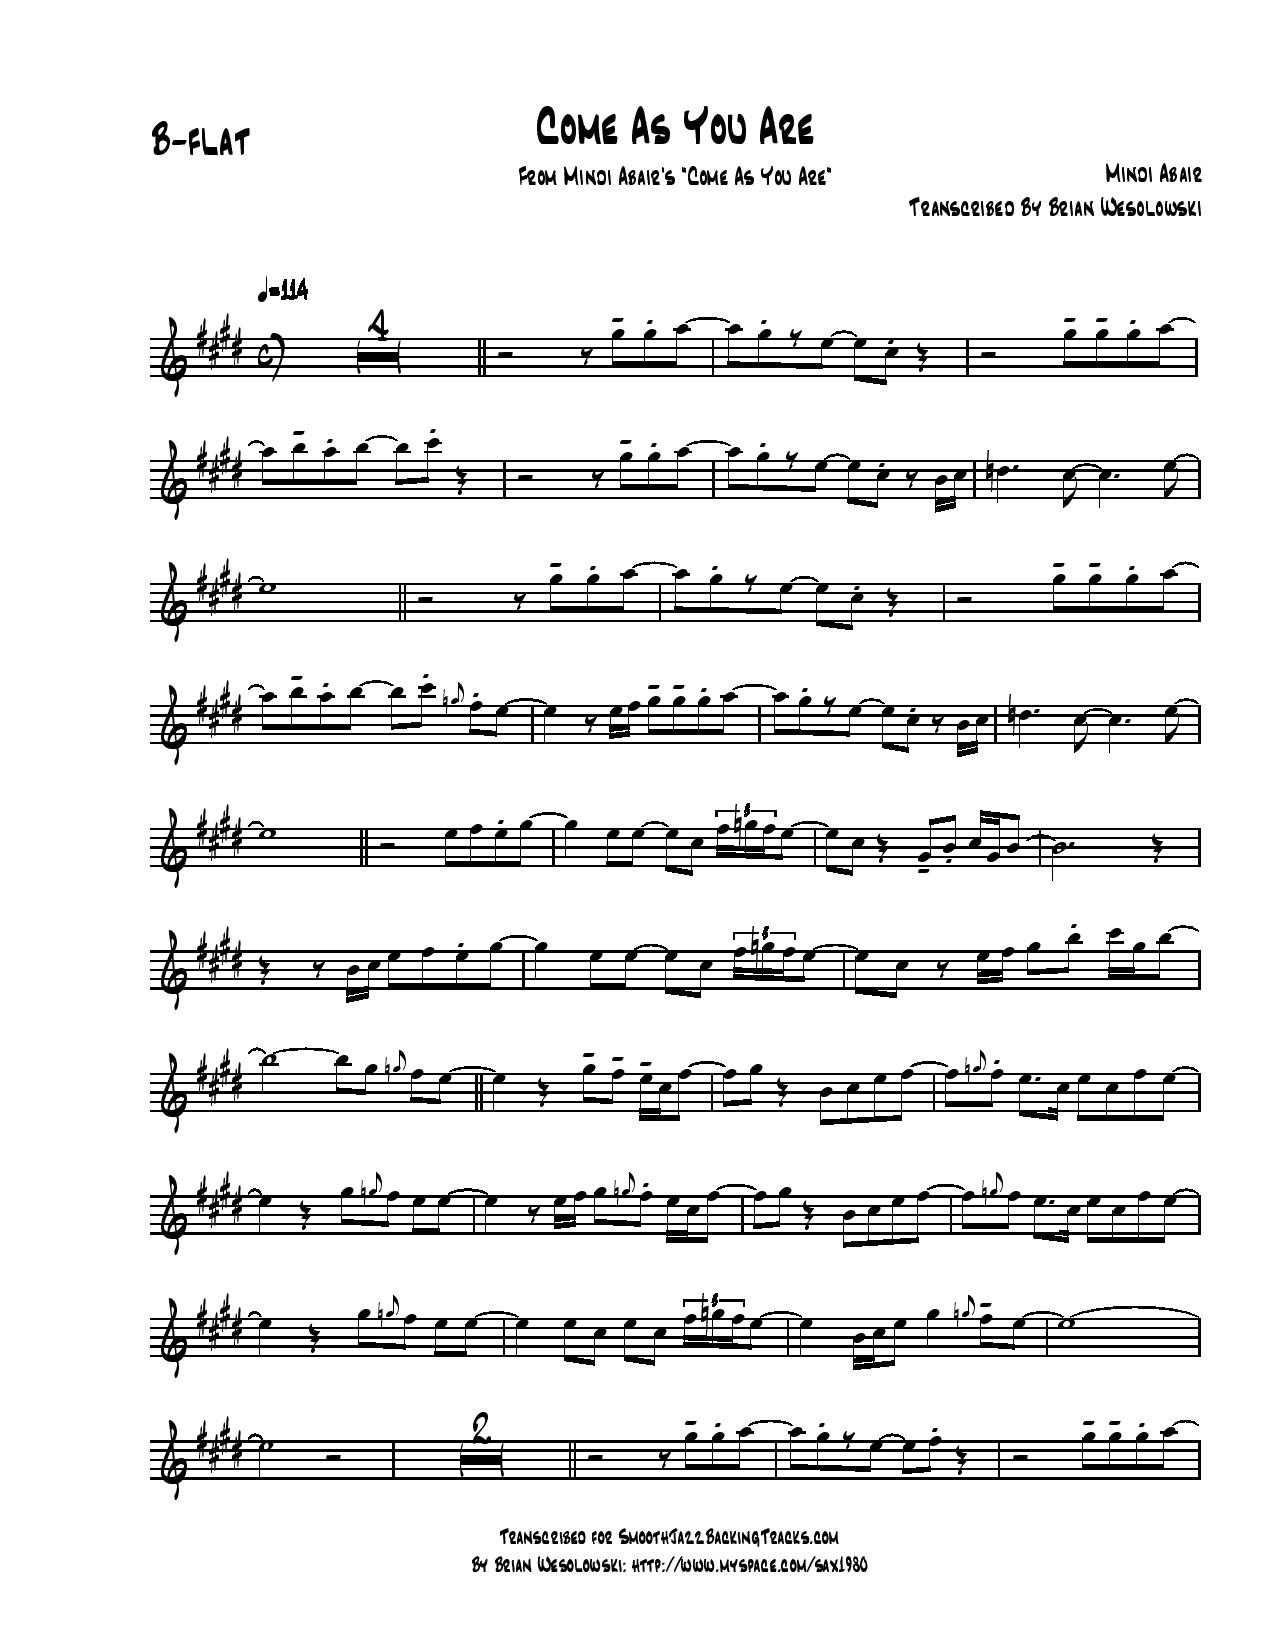 Come as you are chords guitar gallery guitar chords examples smooth jazz sax solo sheet music k m chords included fatherlandz gallery hexwebz Images